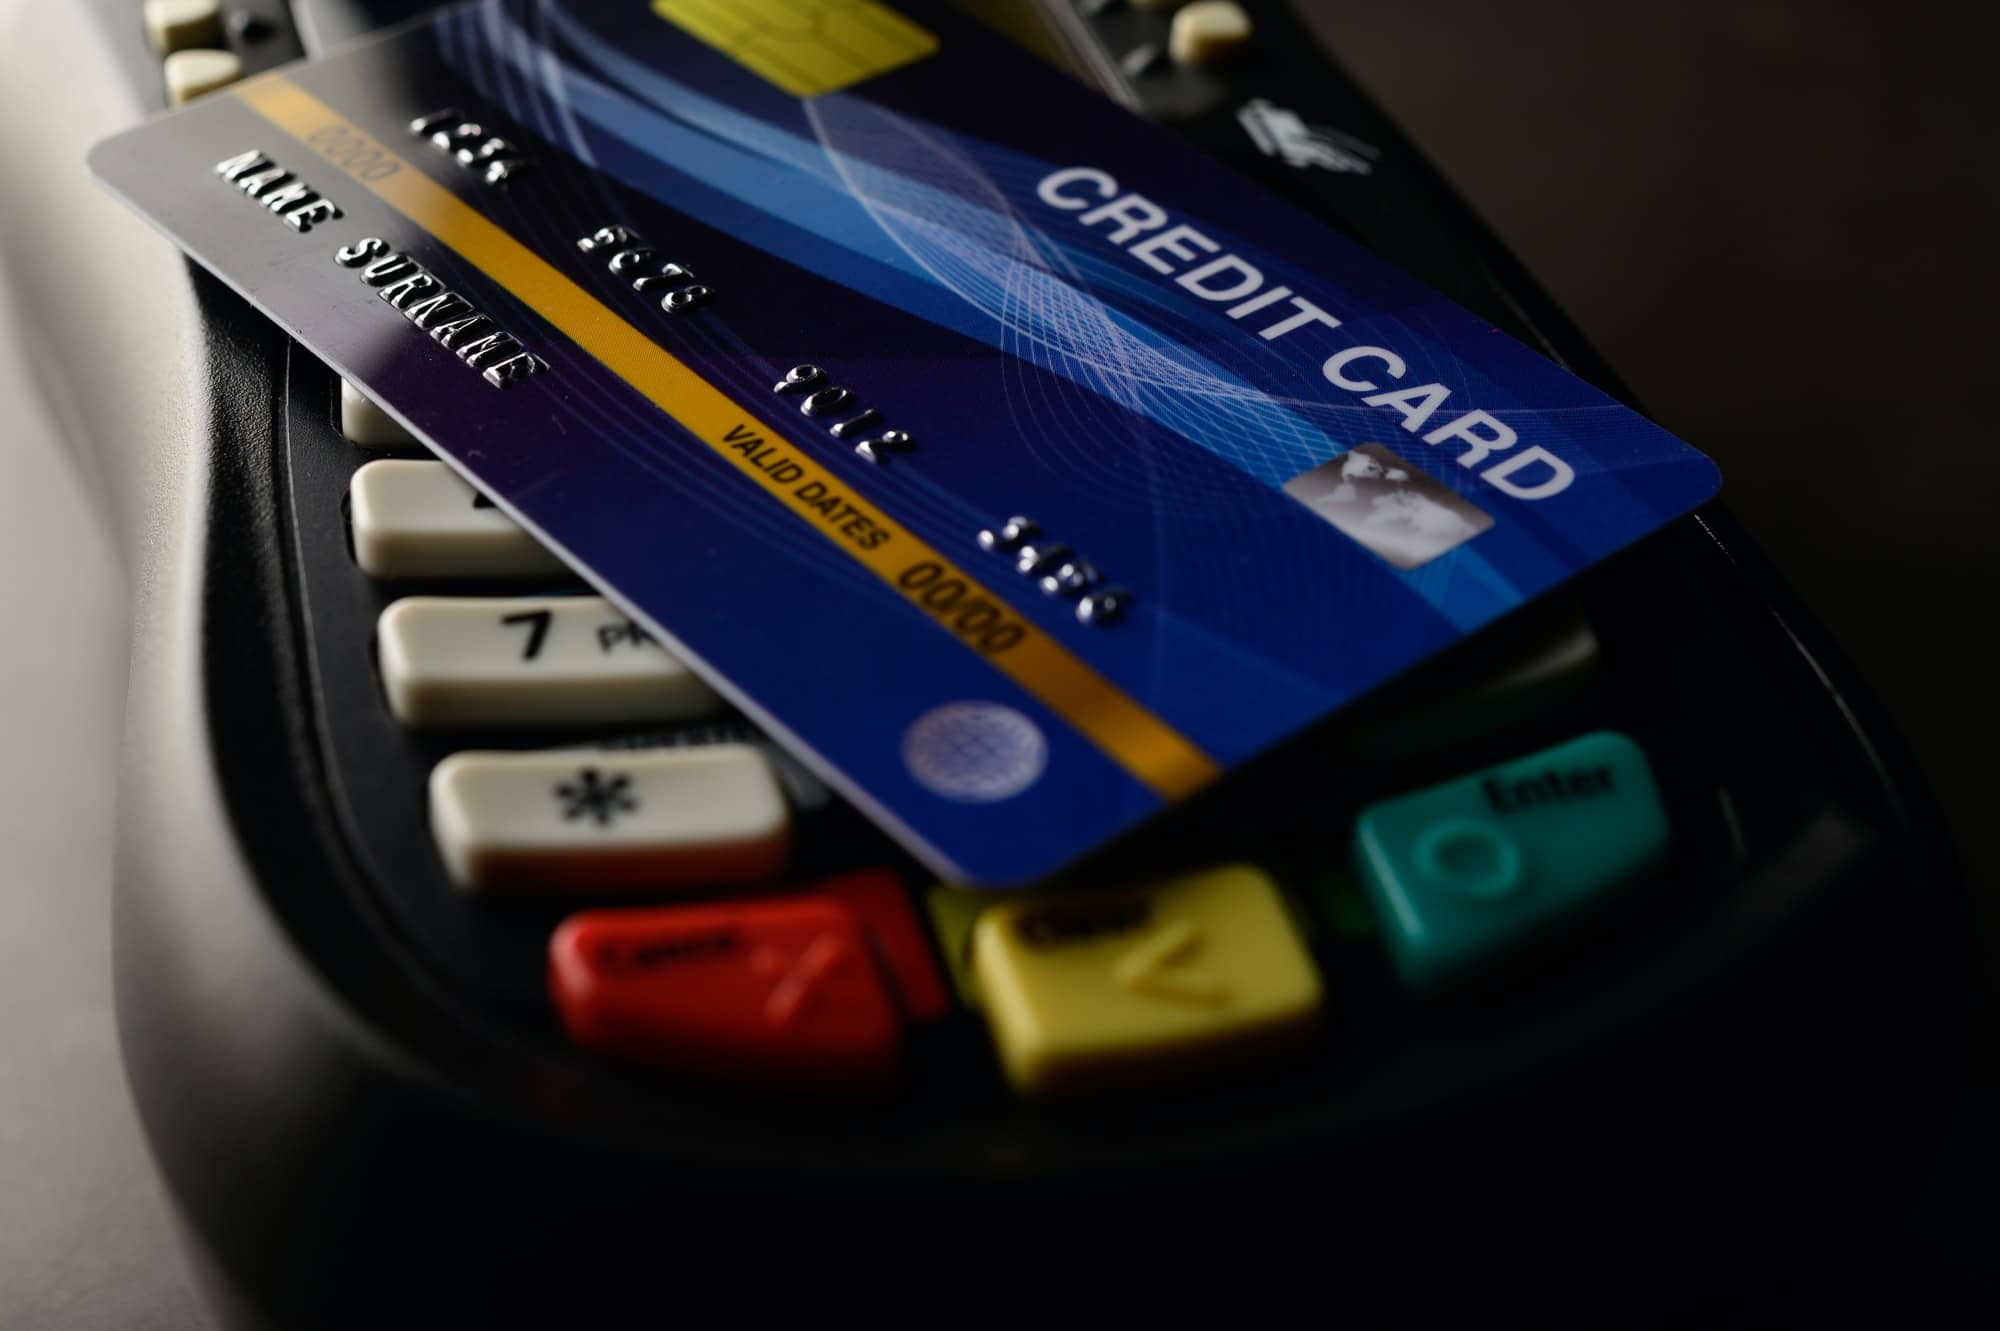 Credit cards placed on credit card swipes